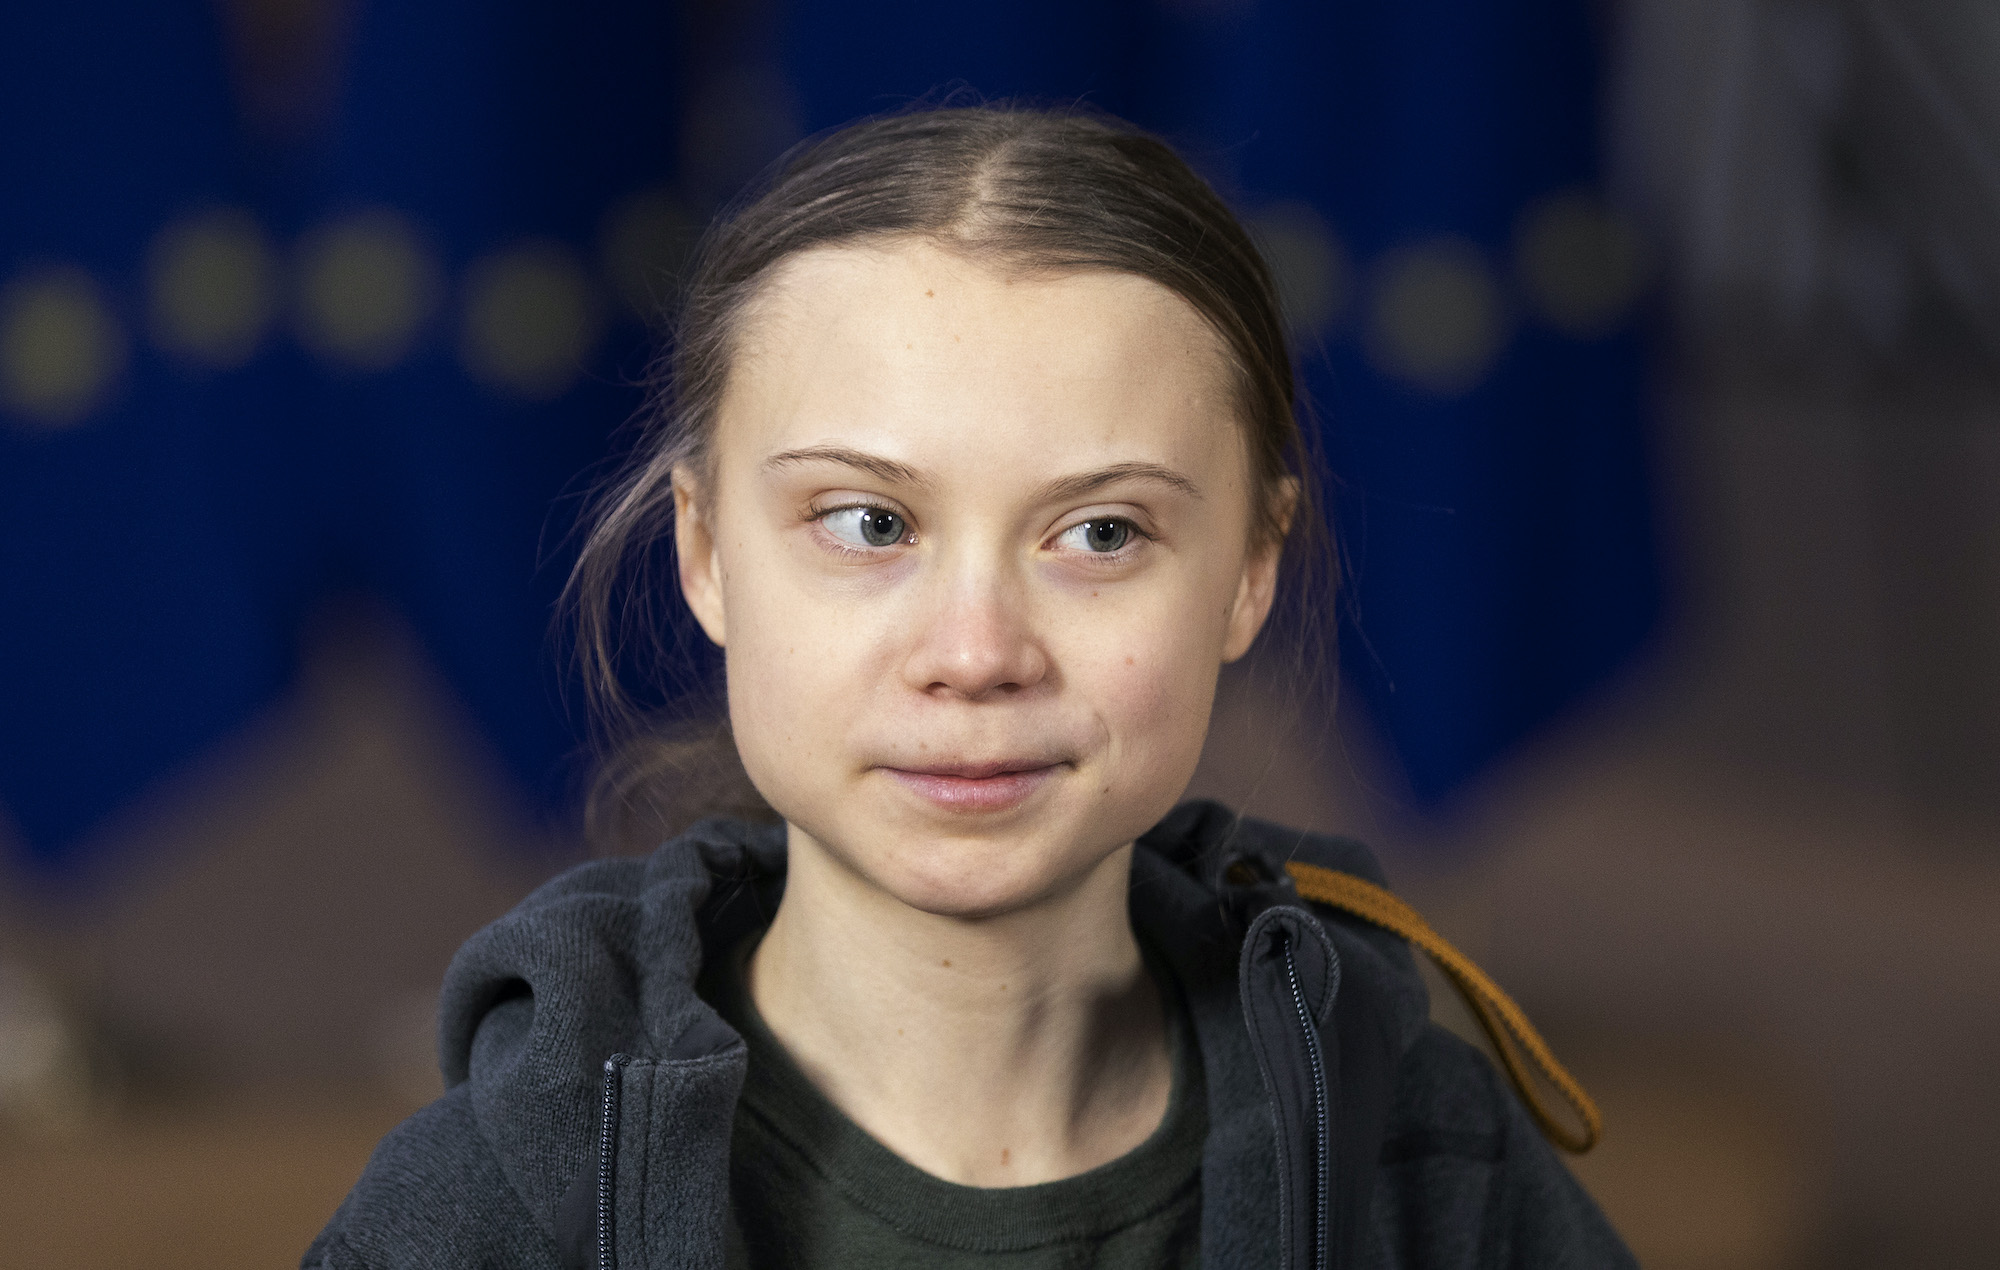 """Greta Thunberg on the climate crisis: """"The people in power have given up"""""""